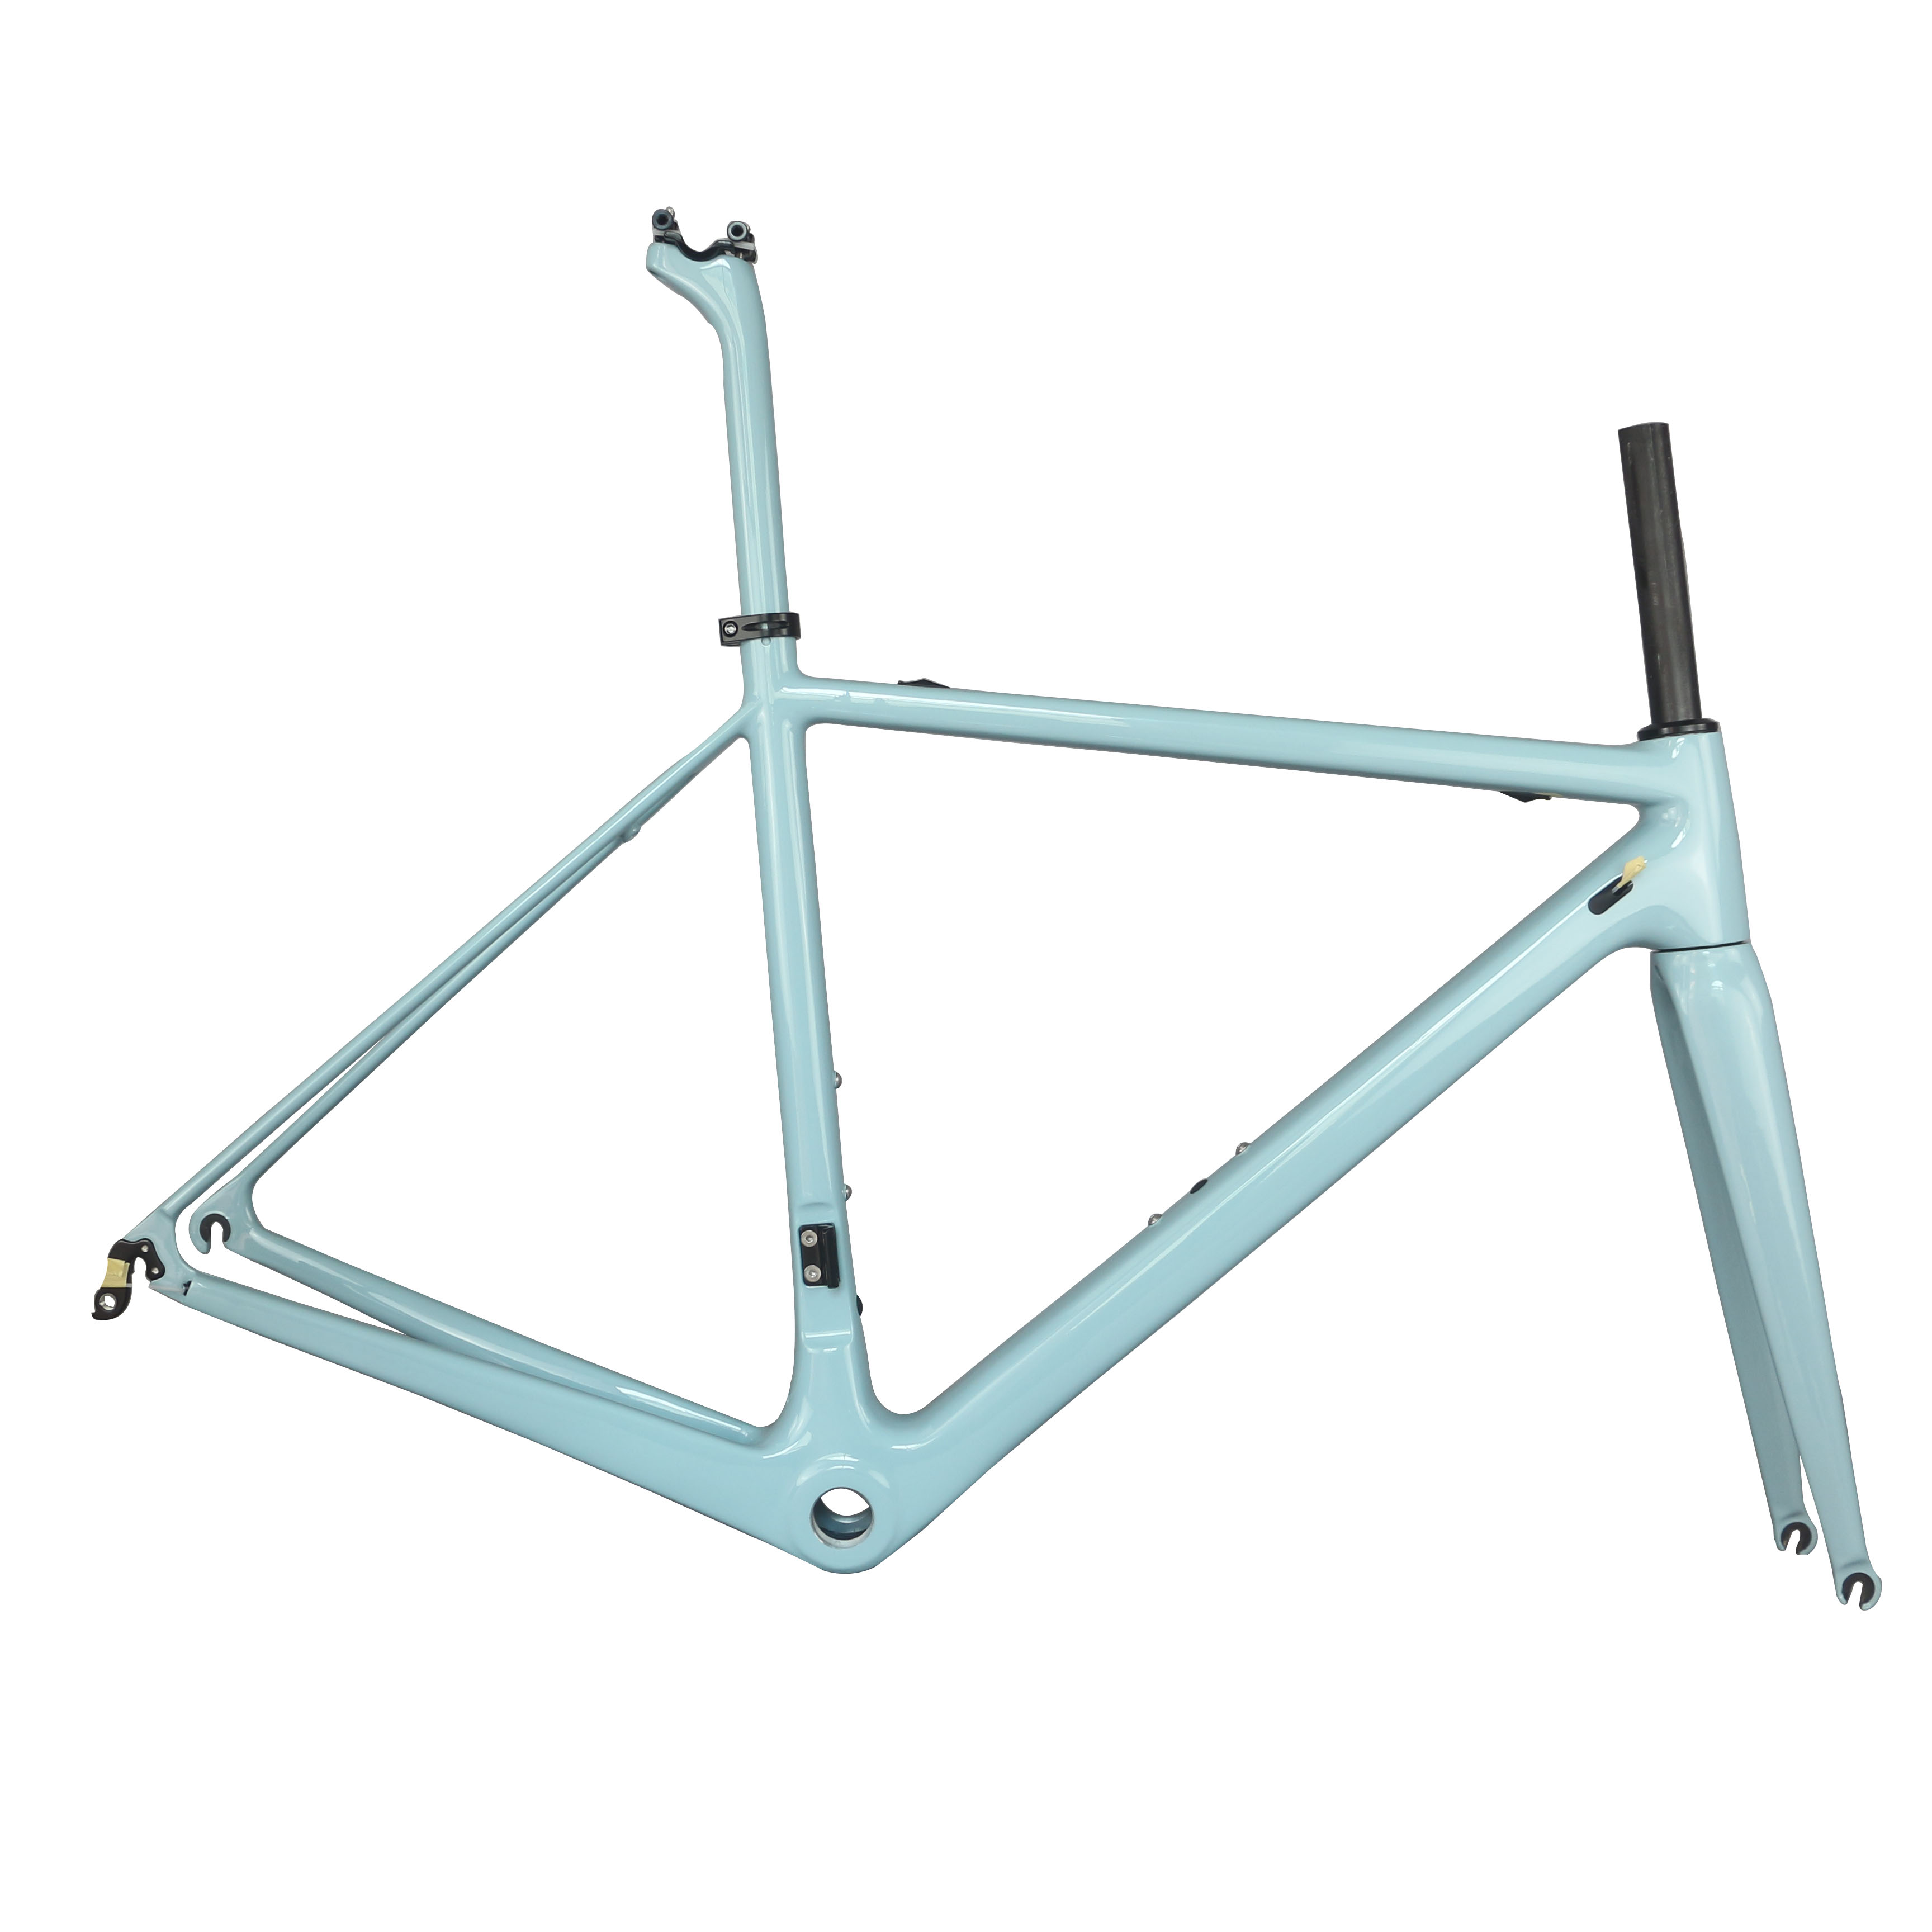 2020 Newest Customized Paint BSA And BB30 Toray Carbon Fiber T1000 For 27.2mm Seat Post Road Frame  FM066